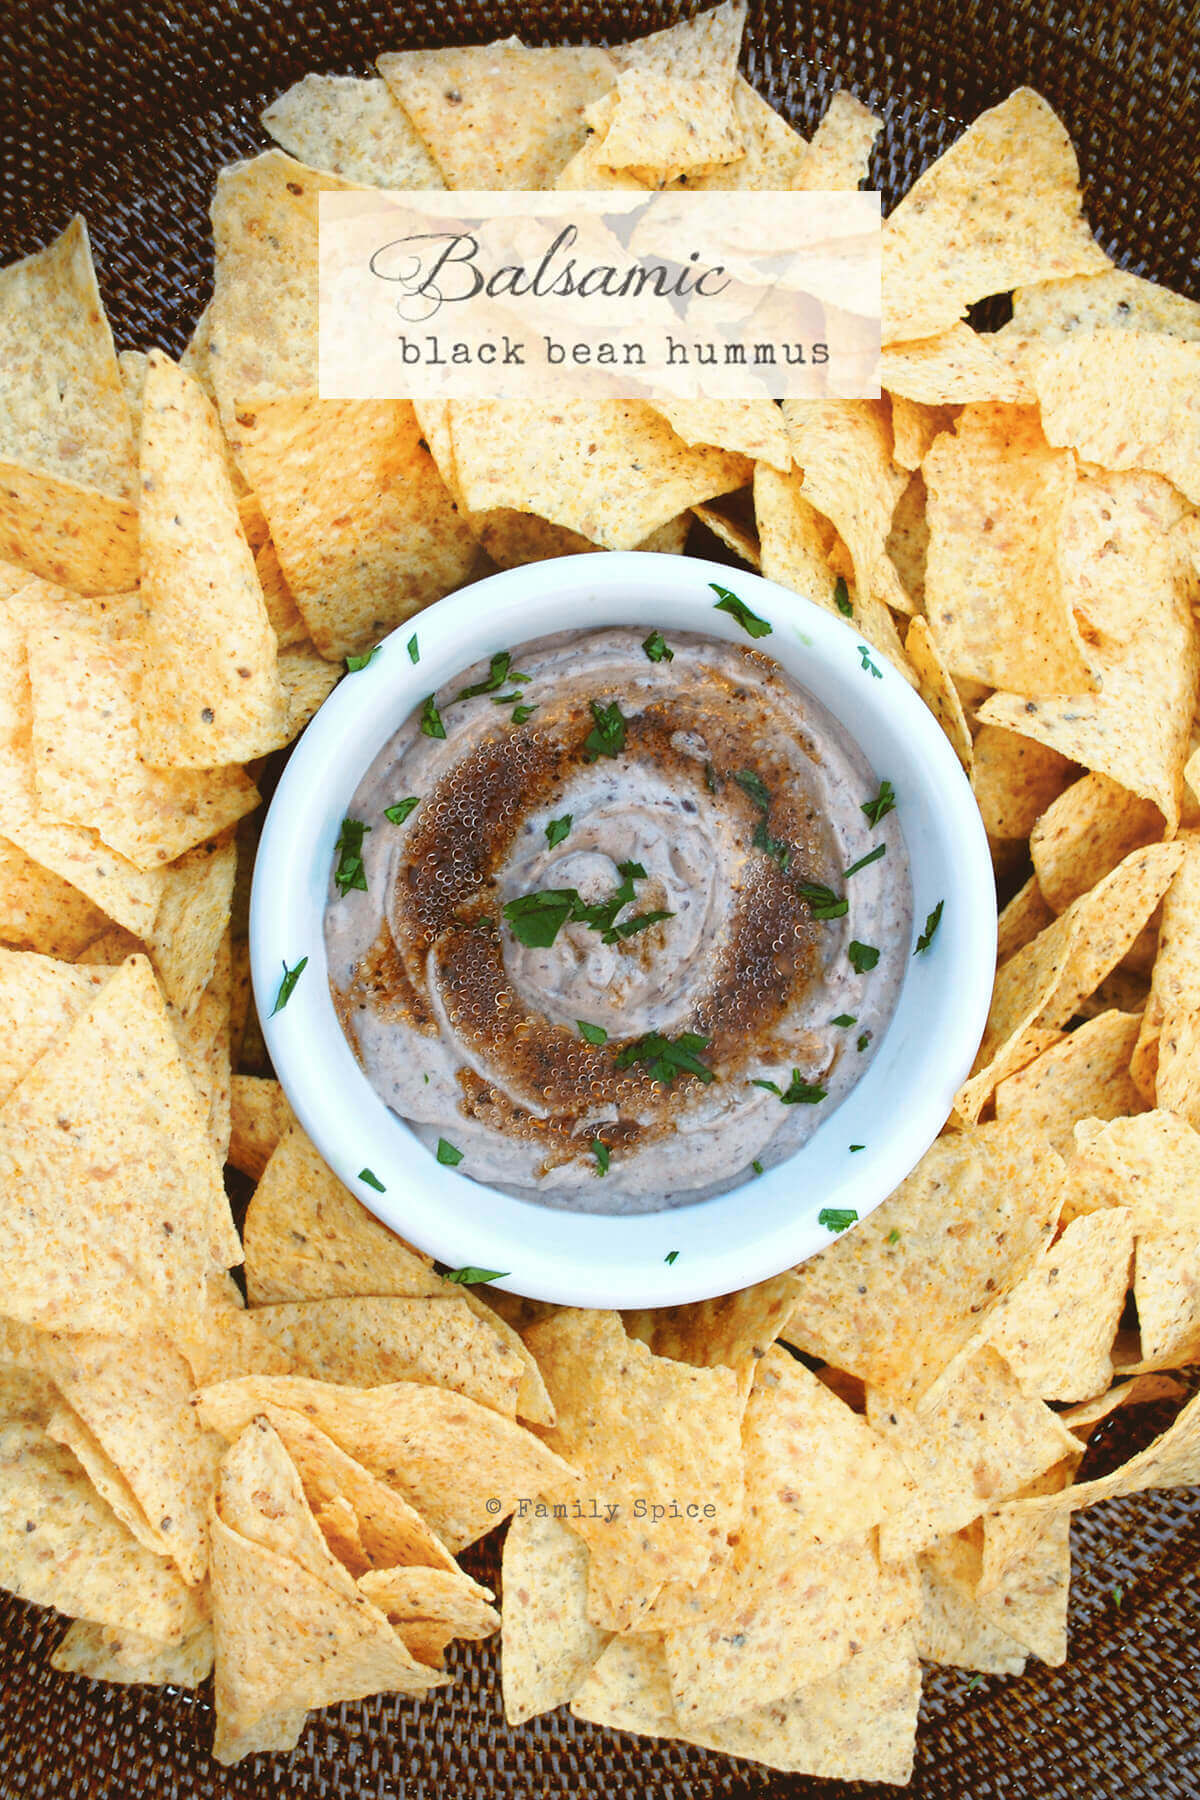 New pin for black bean hummus with balsamic vinaigrette by FamilySpice.com